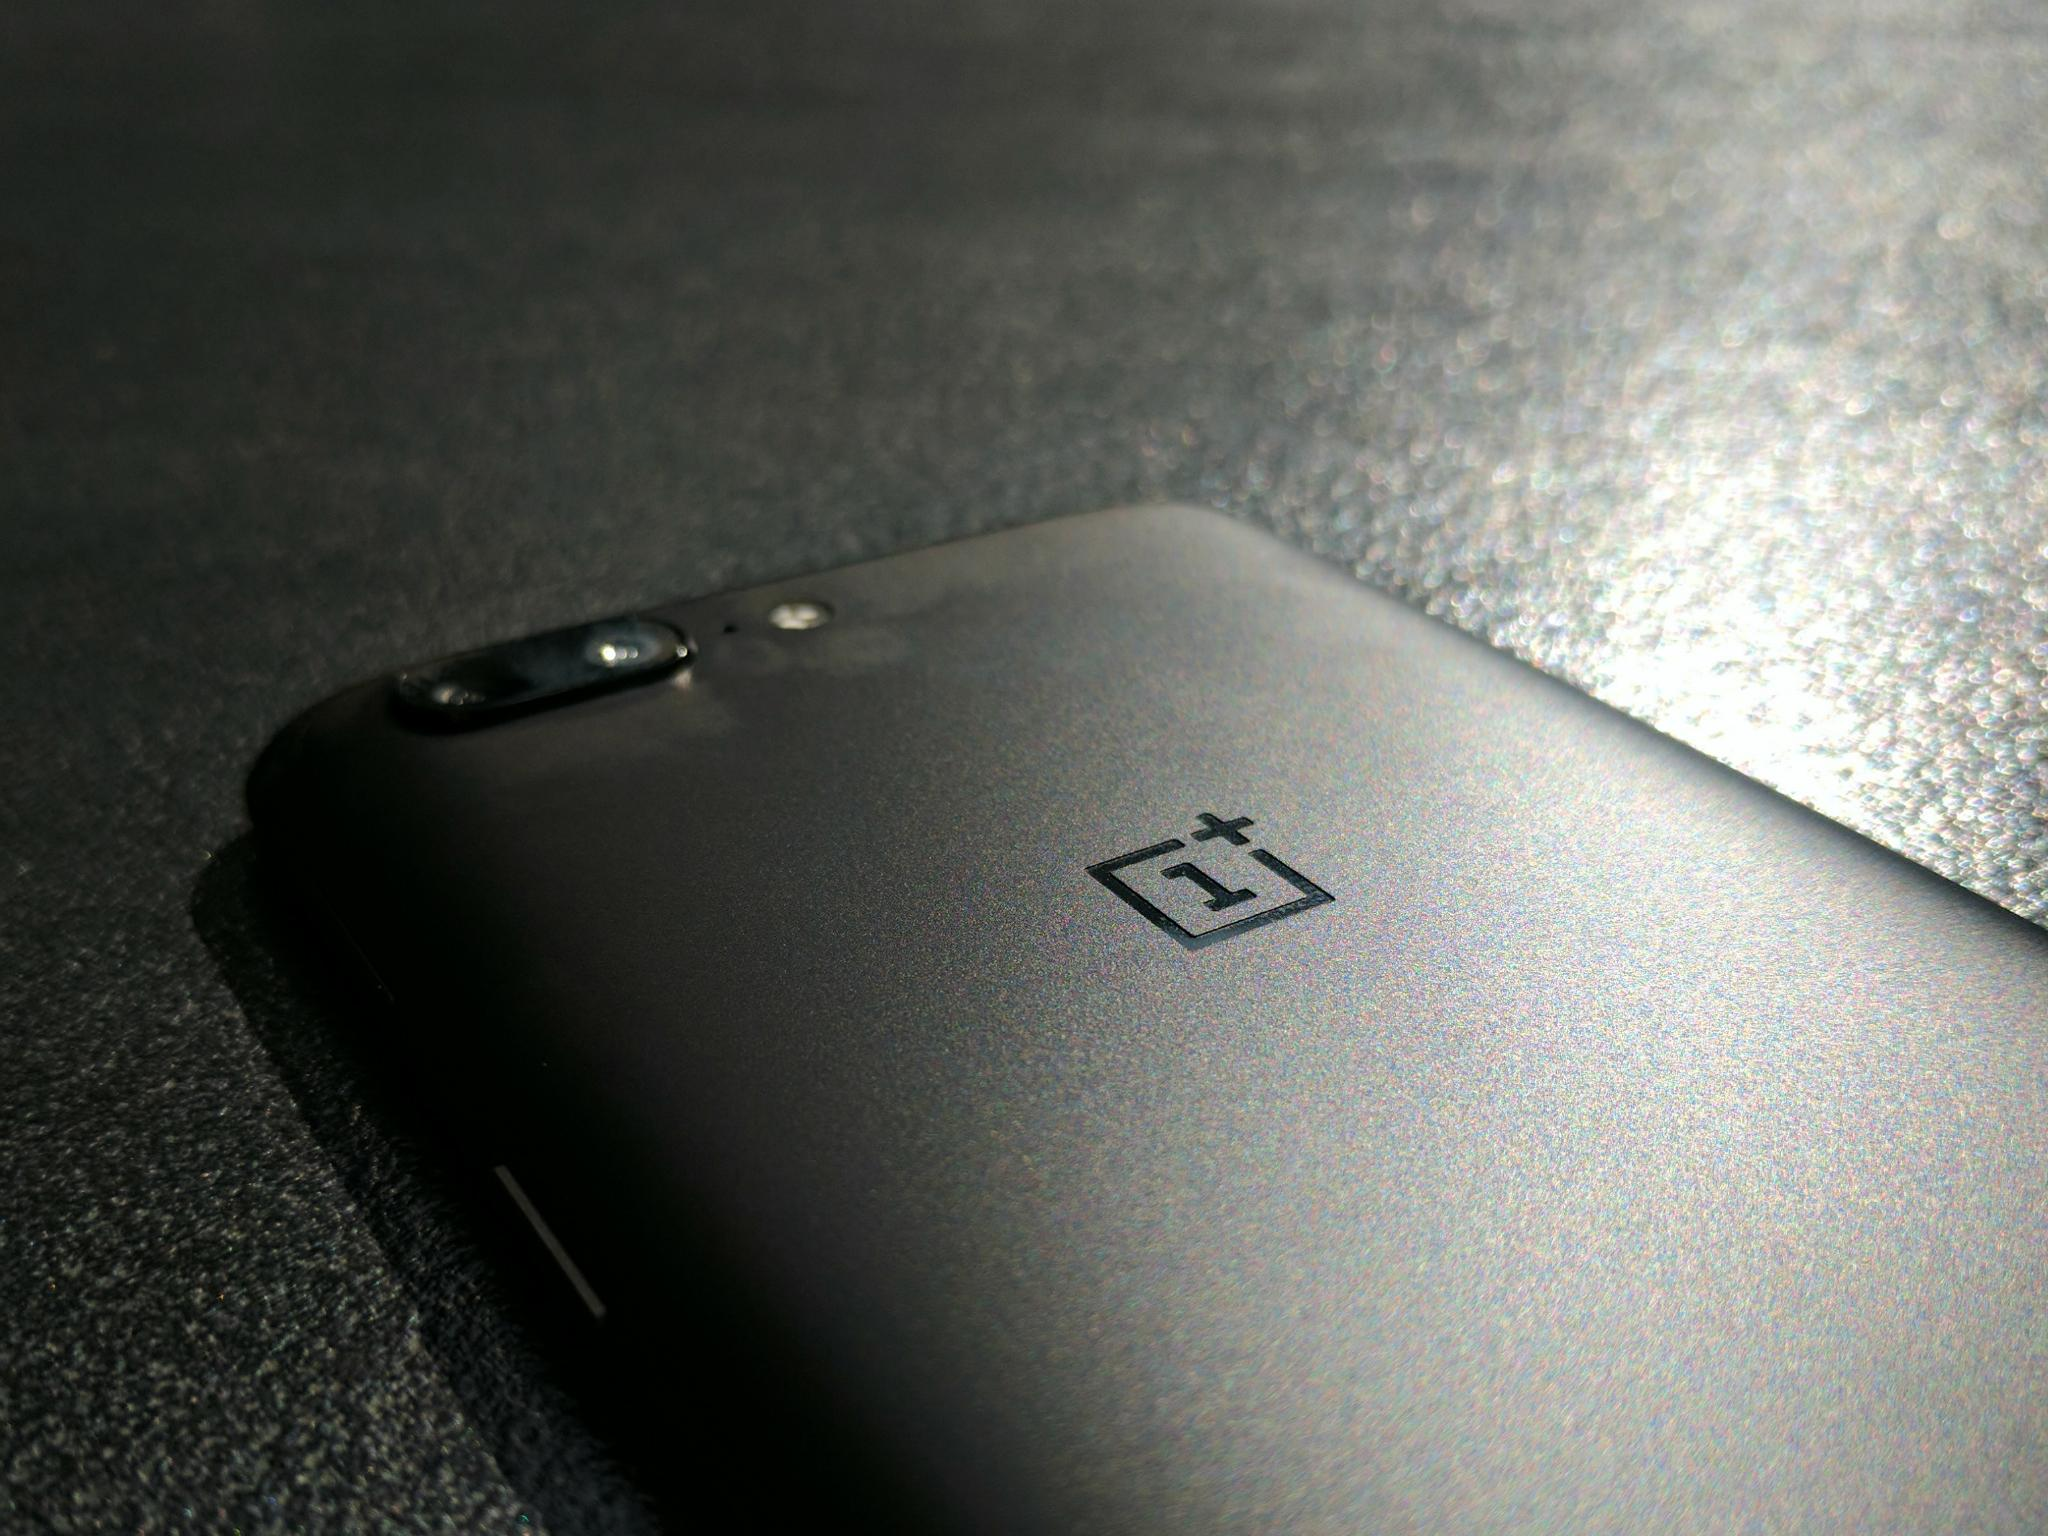 OnePlus 5 review: The Samsung Galaxy S8 rival that's a lot